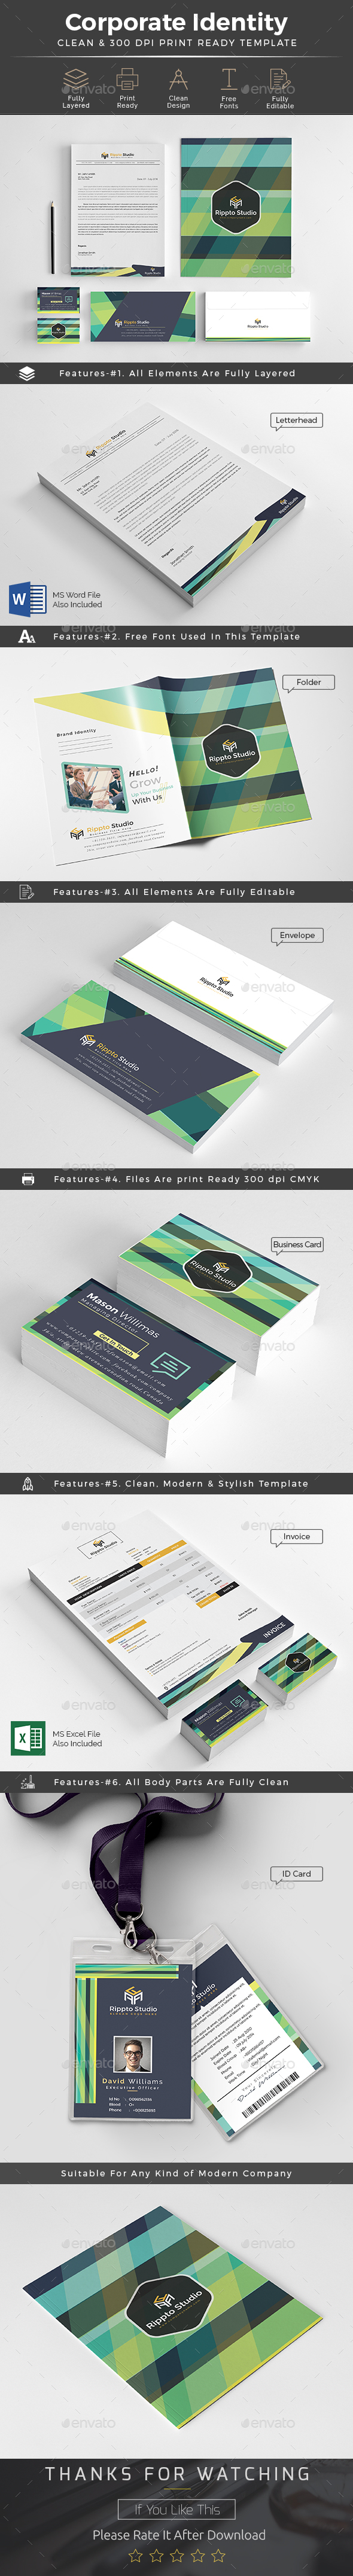 Branding Identity Pack / Office Stationery - Stationery Print Templates